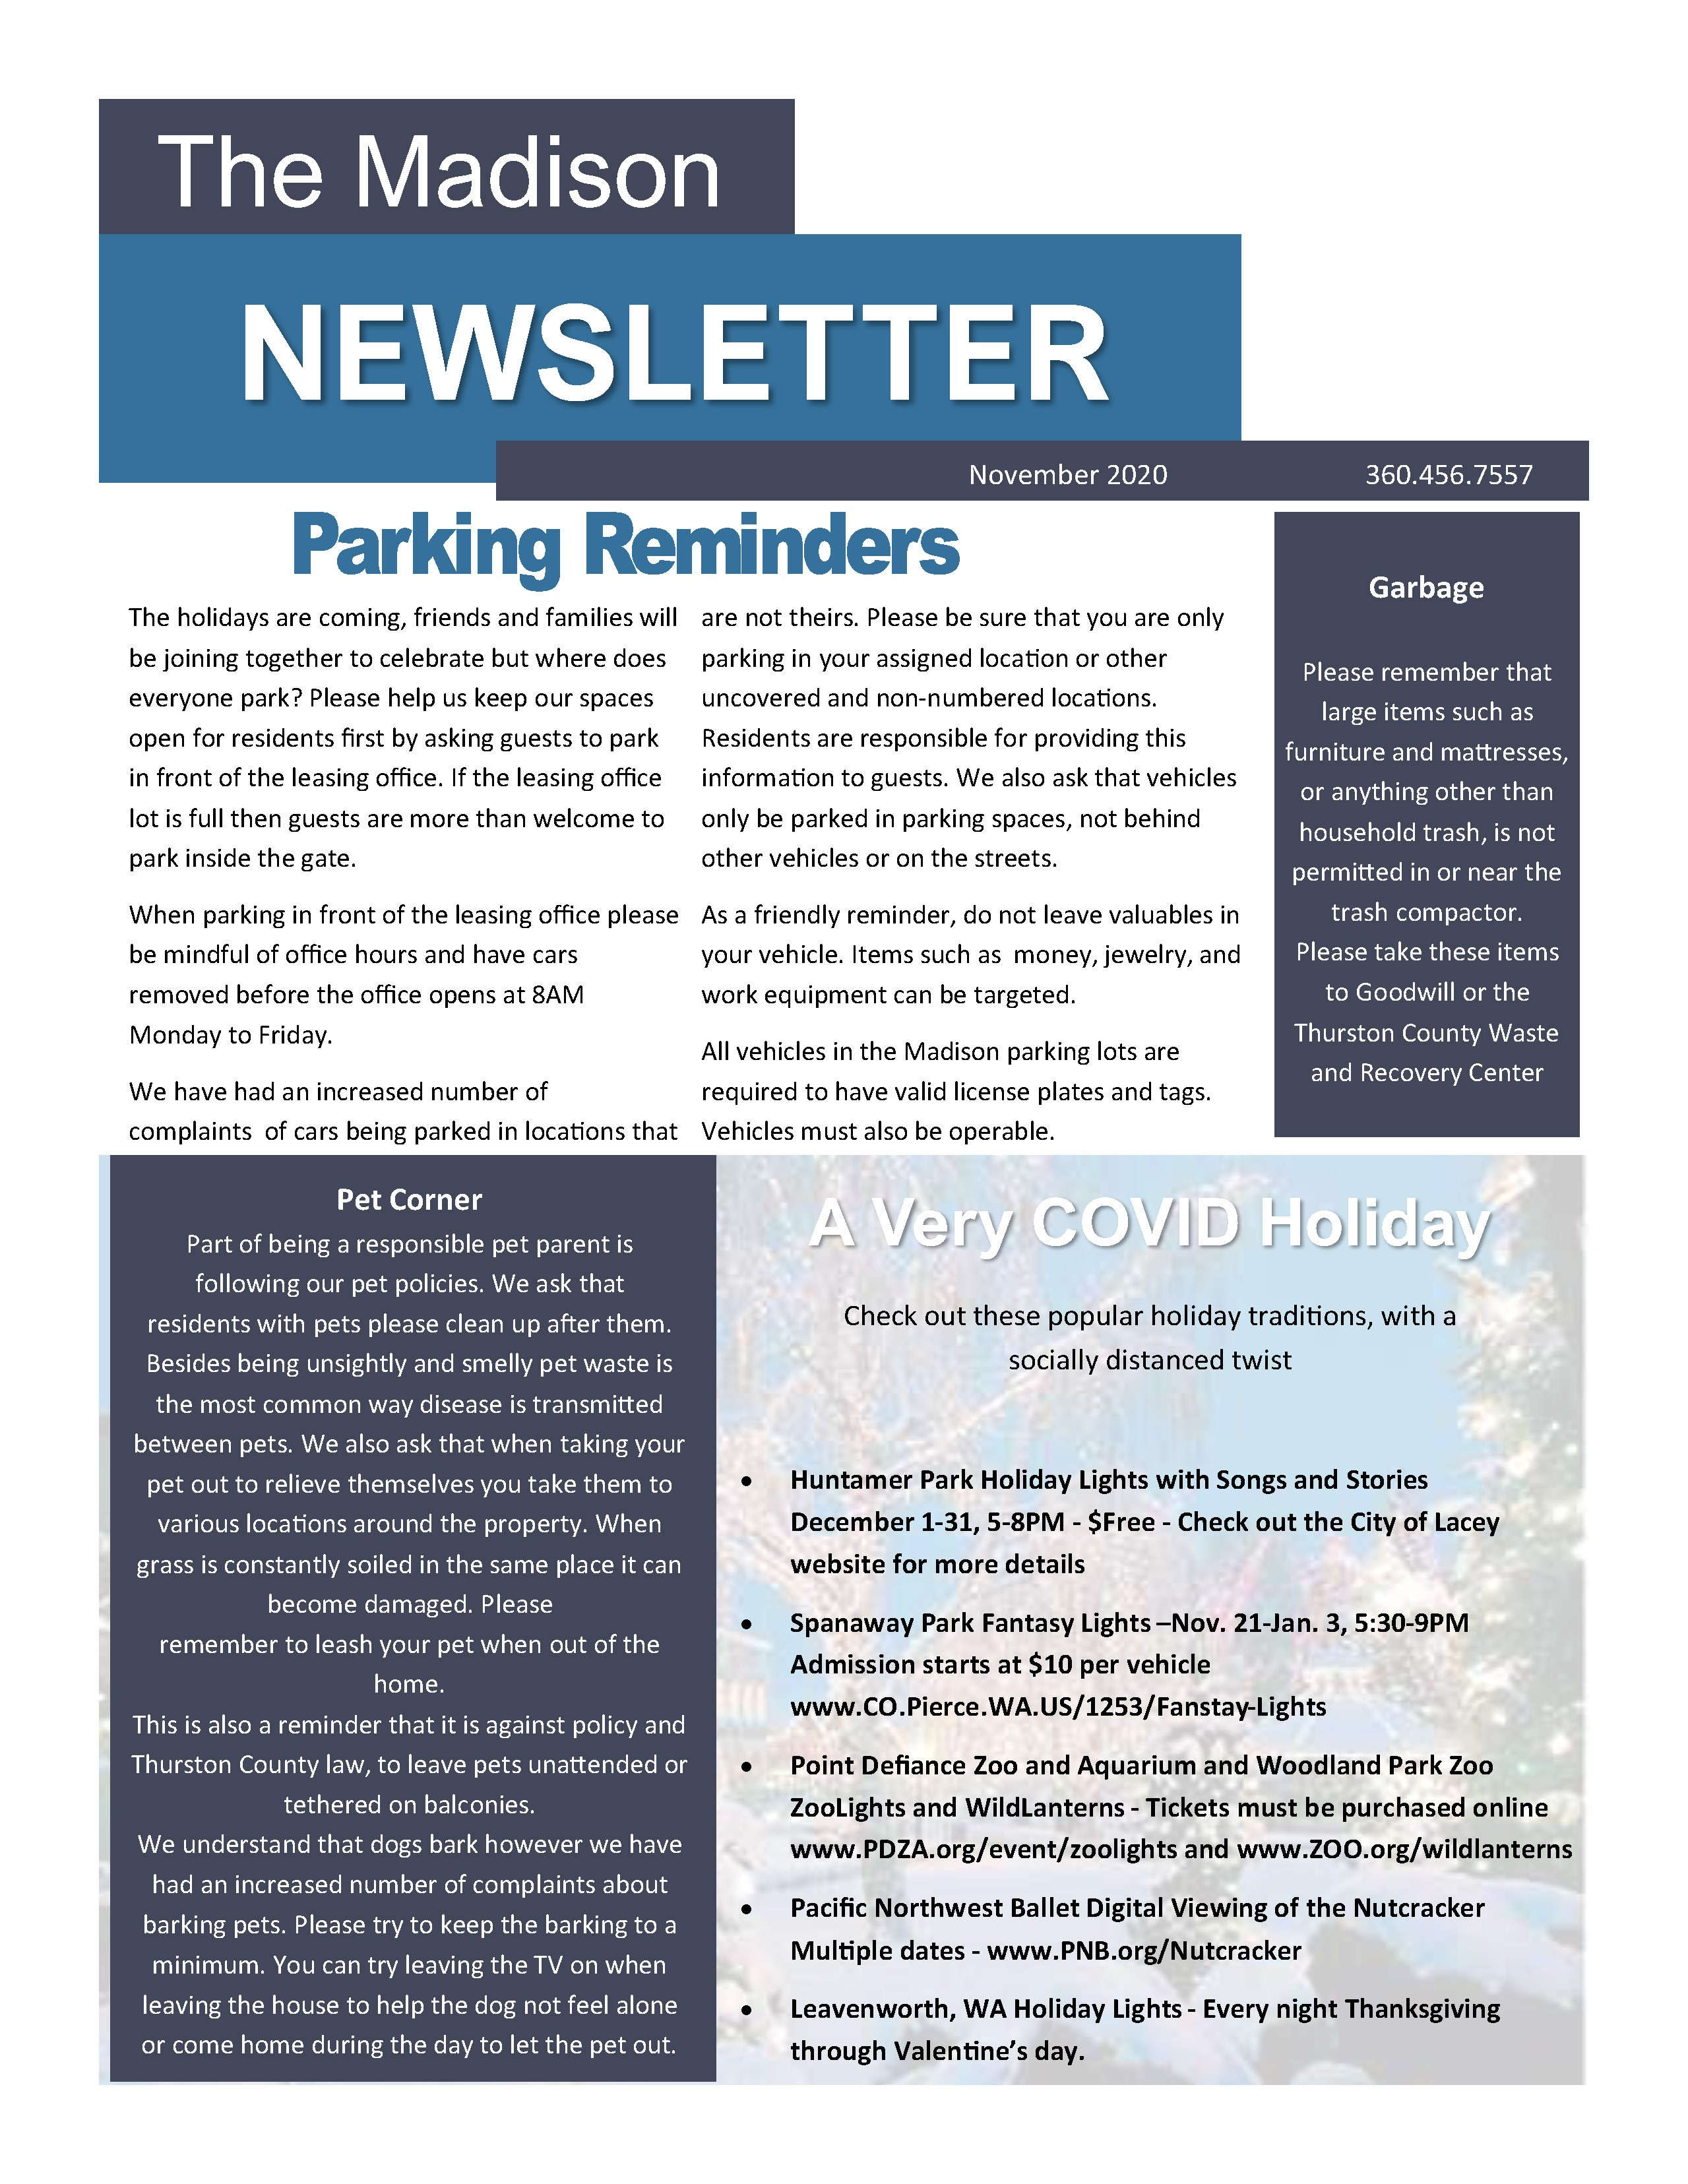 If you need assistance with accessing the Madison November 2020 Newsletter, please contact our office at ^PropertyPhone^